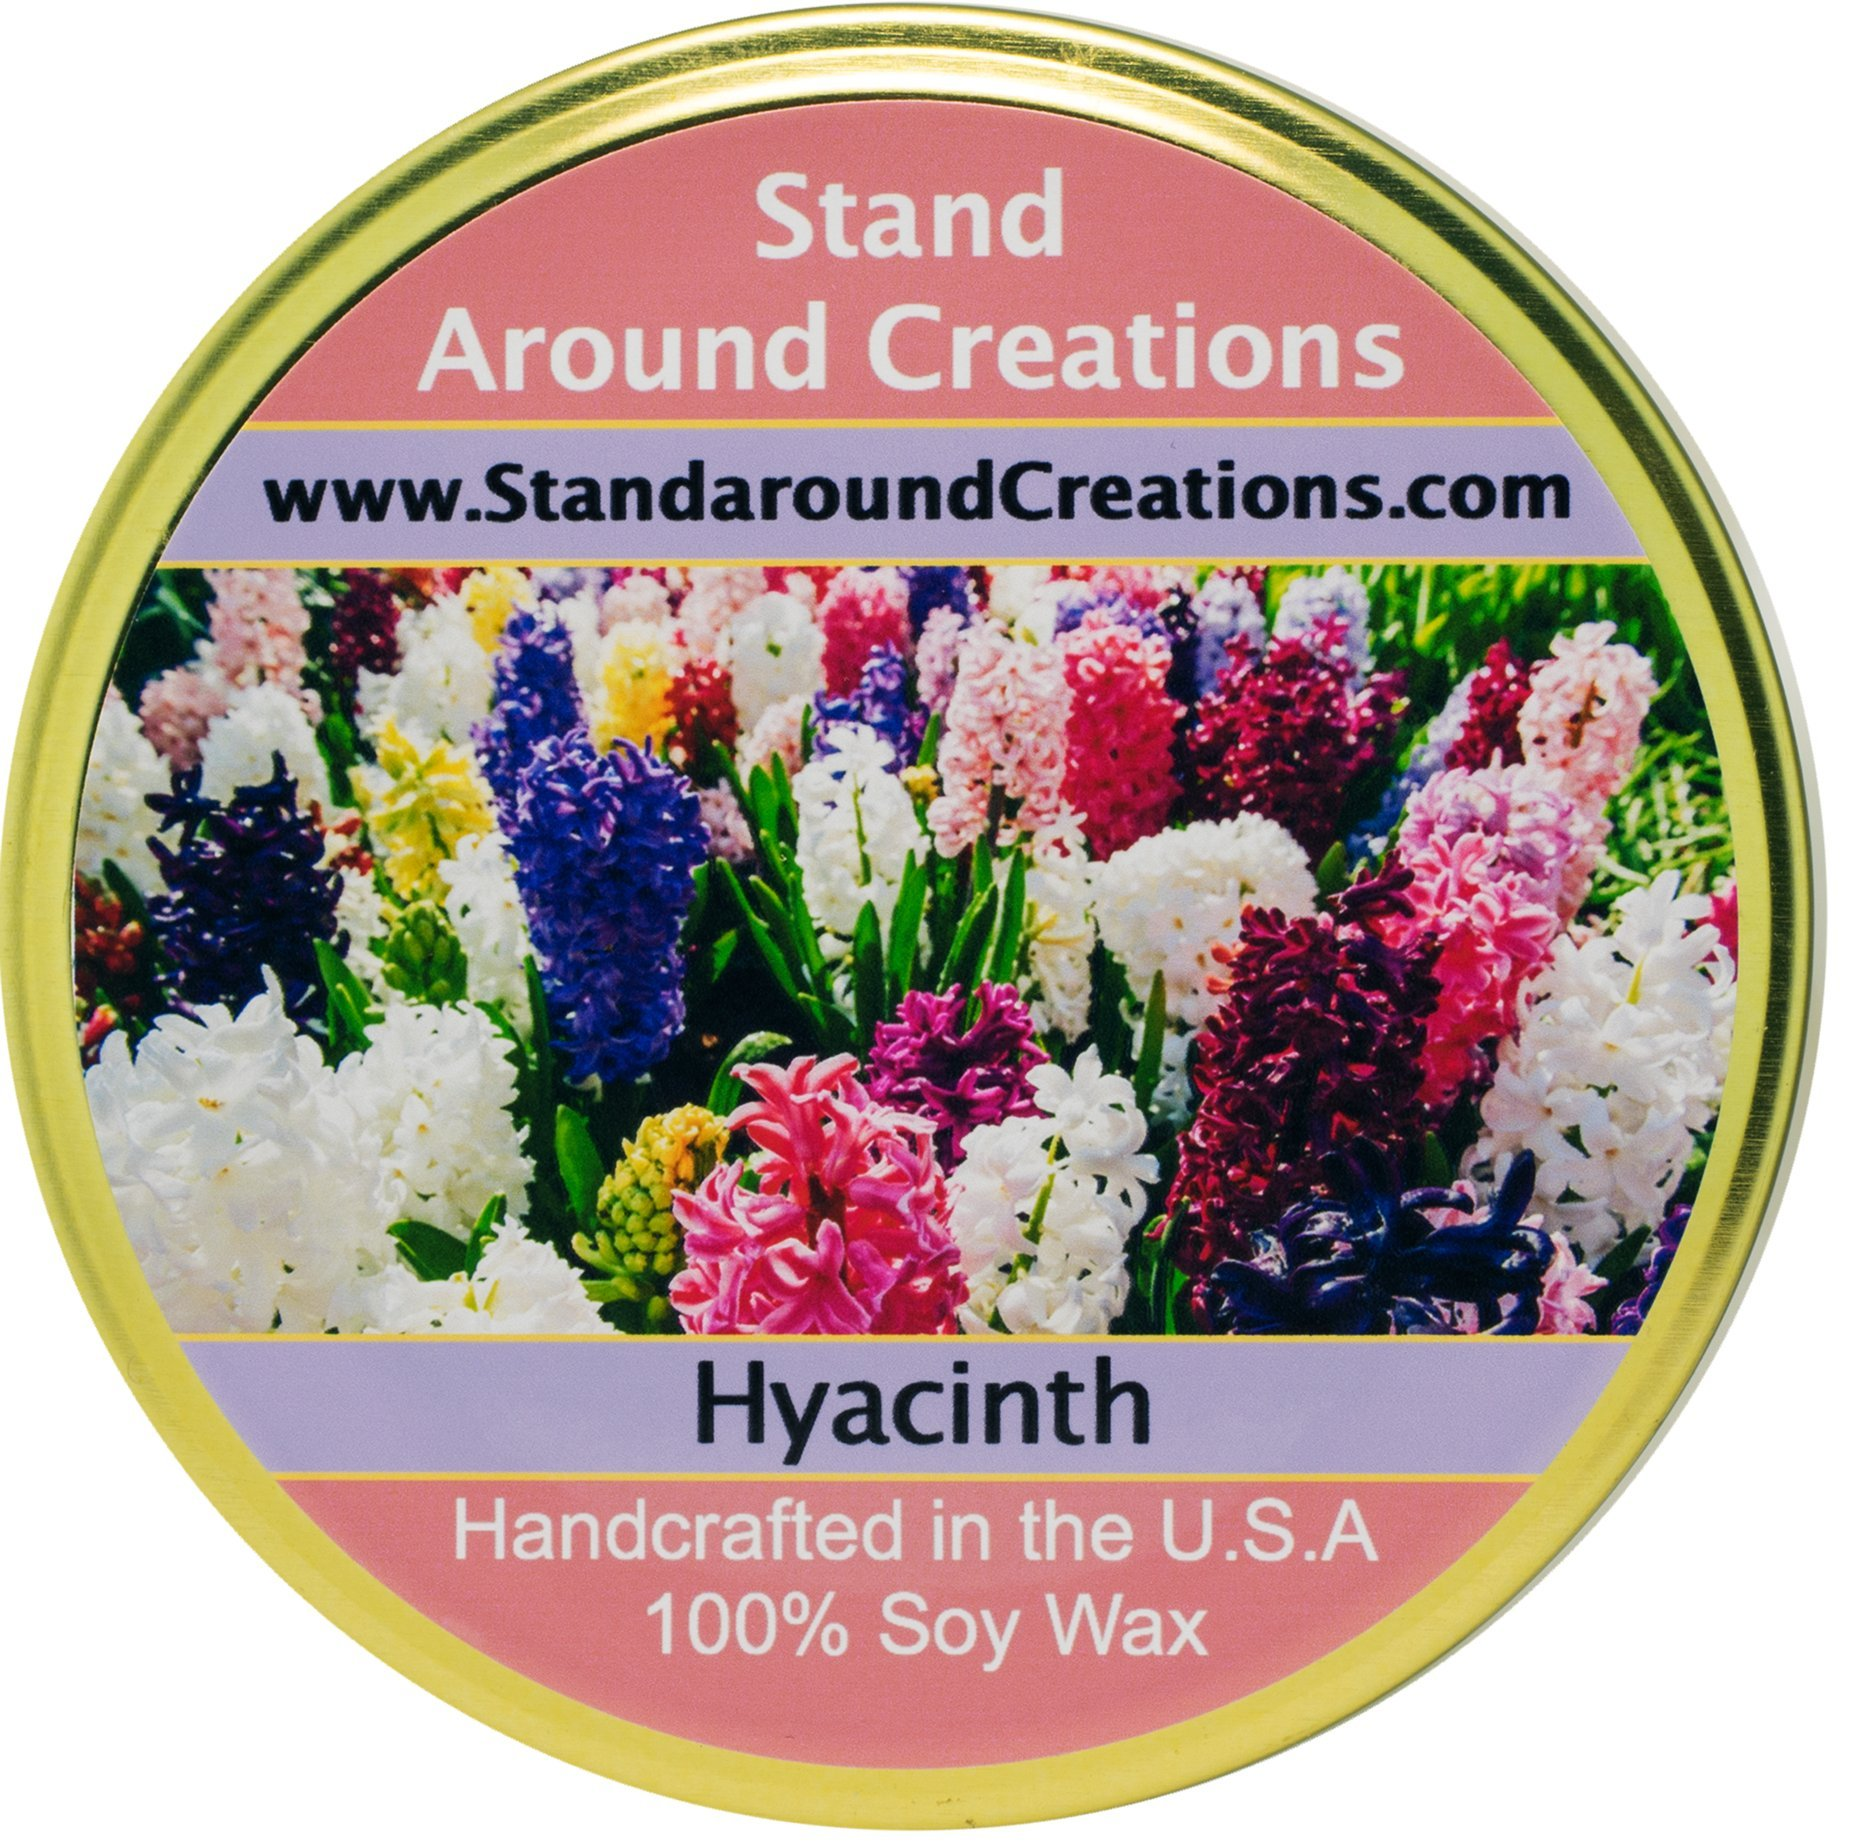 Premium 100% Soy Tureen Candle - 11 oz. - Hyacinth - Lovely notes include lavandin, jasmine, lavender, rose, myrrh.